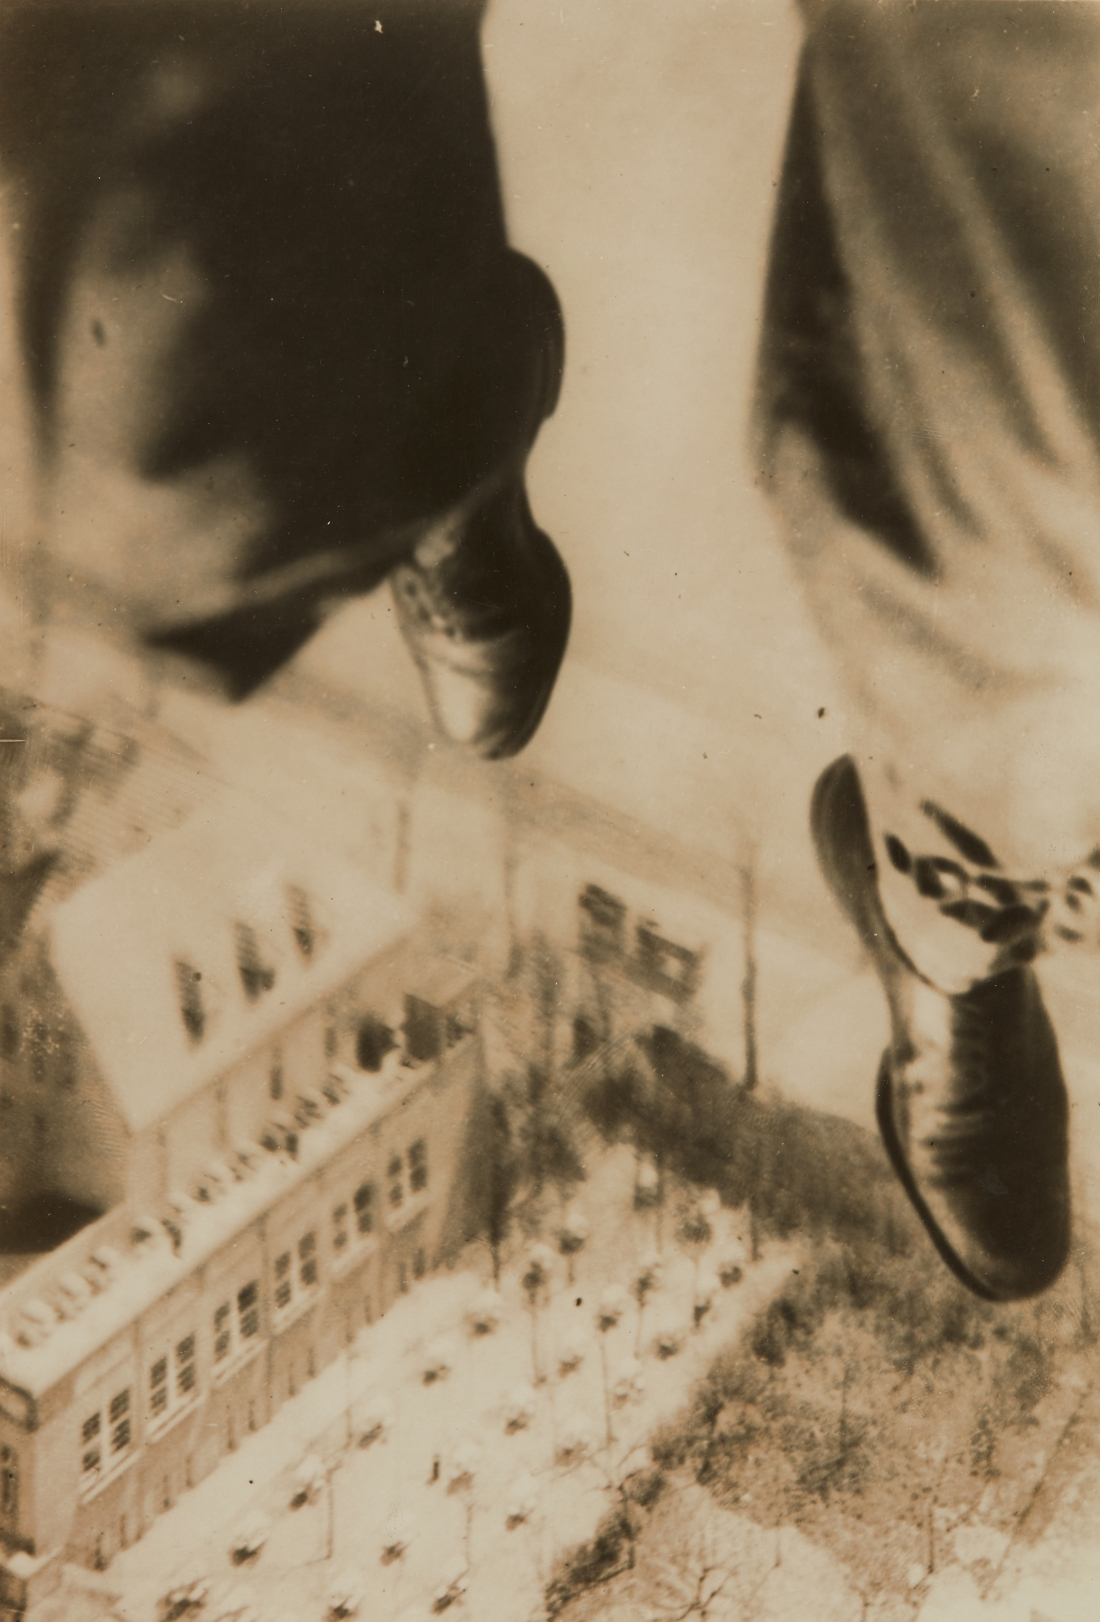 Willi Ruge, Berlin Fallschirmspringer [The Berlin Parachutist]